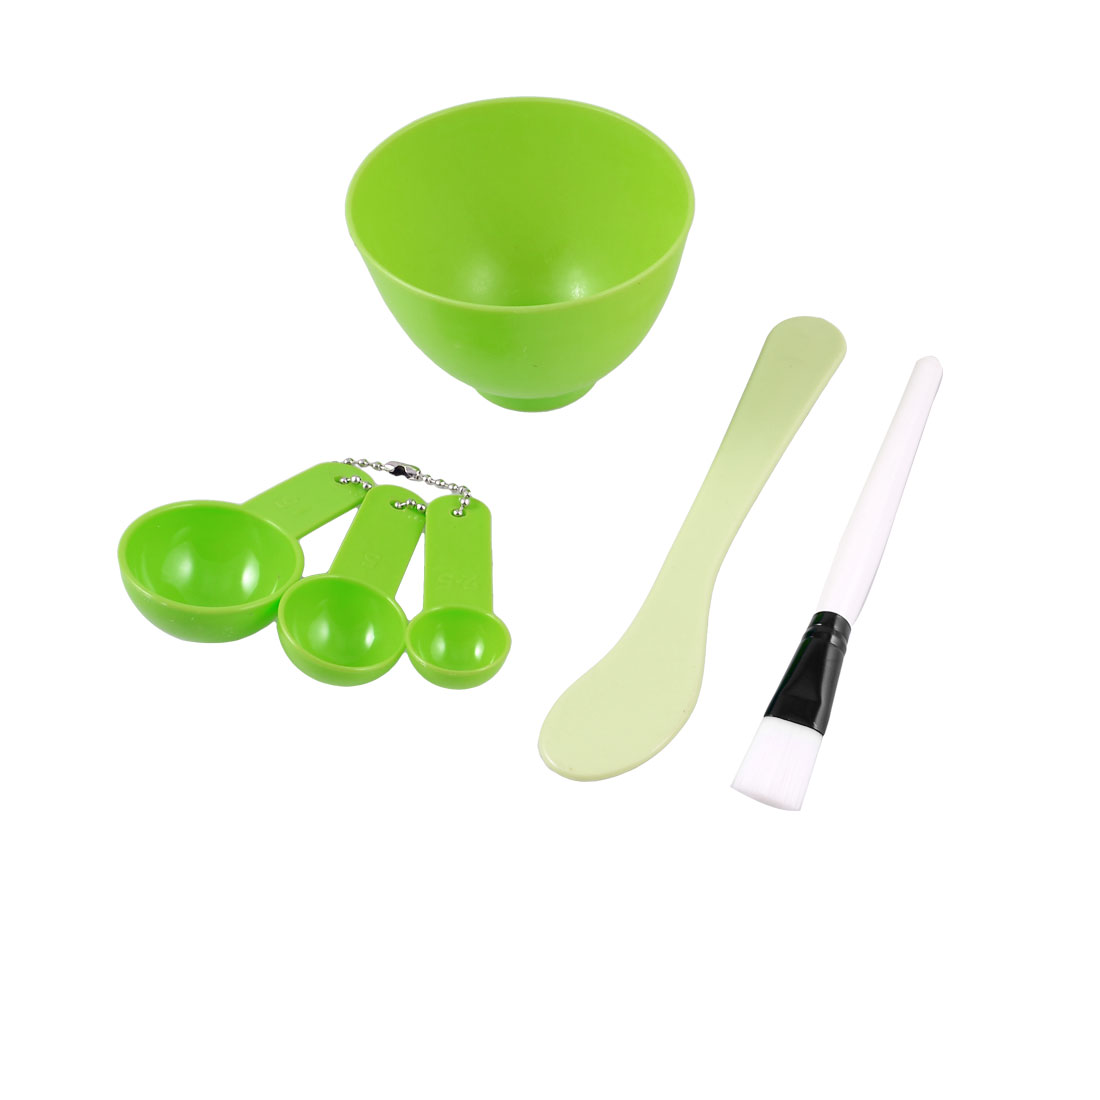 DIY Green Plastic Bowl Brush Spoon Facial Cosmetic Kit 4 in 1 for Ladies Woman